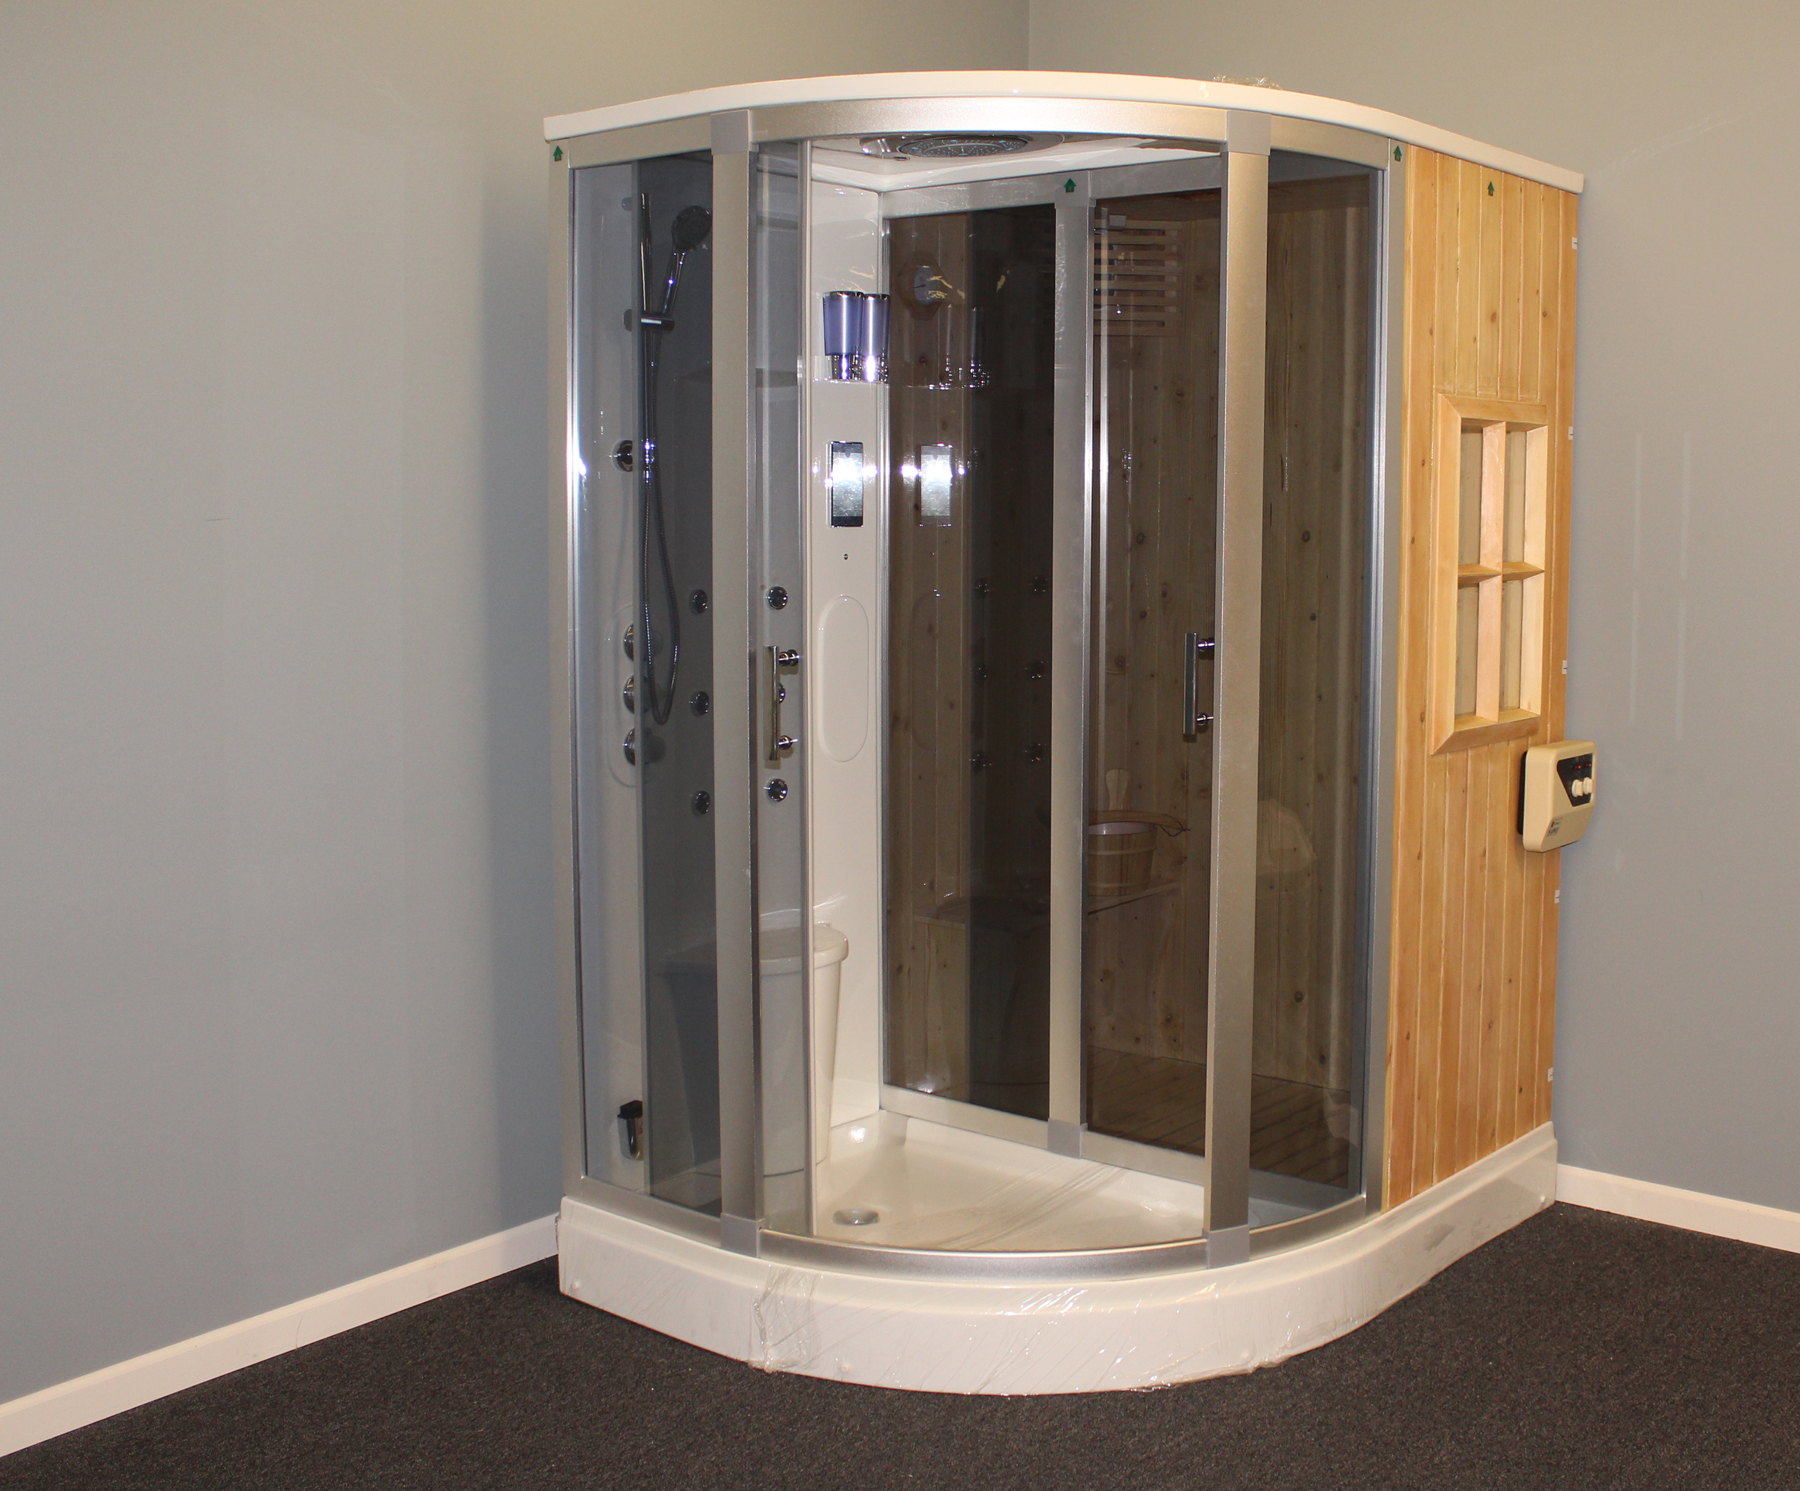 Steam Shower Cost >> Deluxe Shower / Dry Sauna Combo System + Steam Cabin. B001 - Constar USA